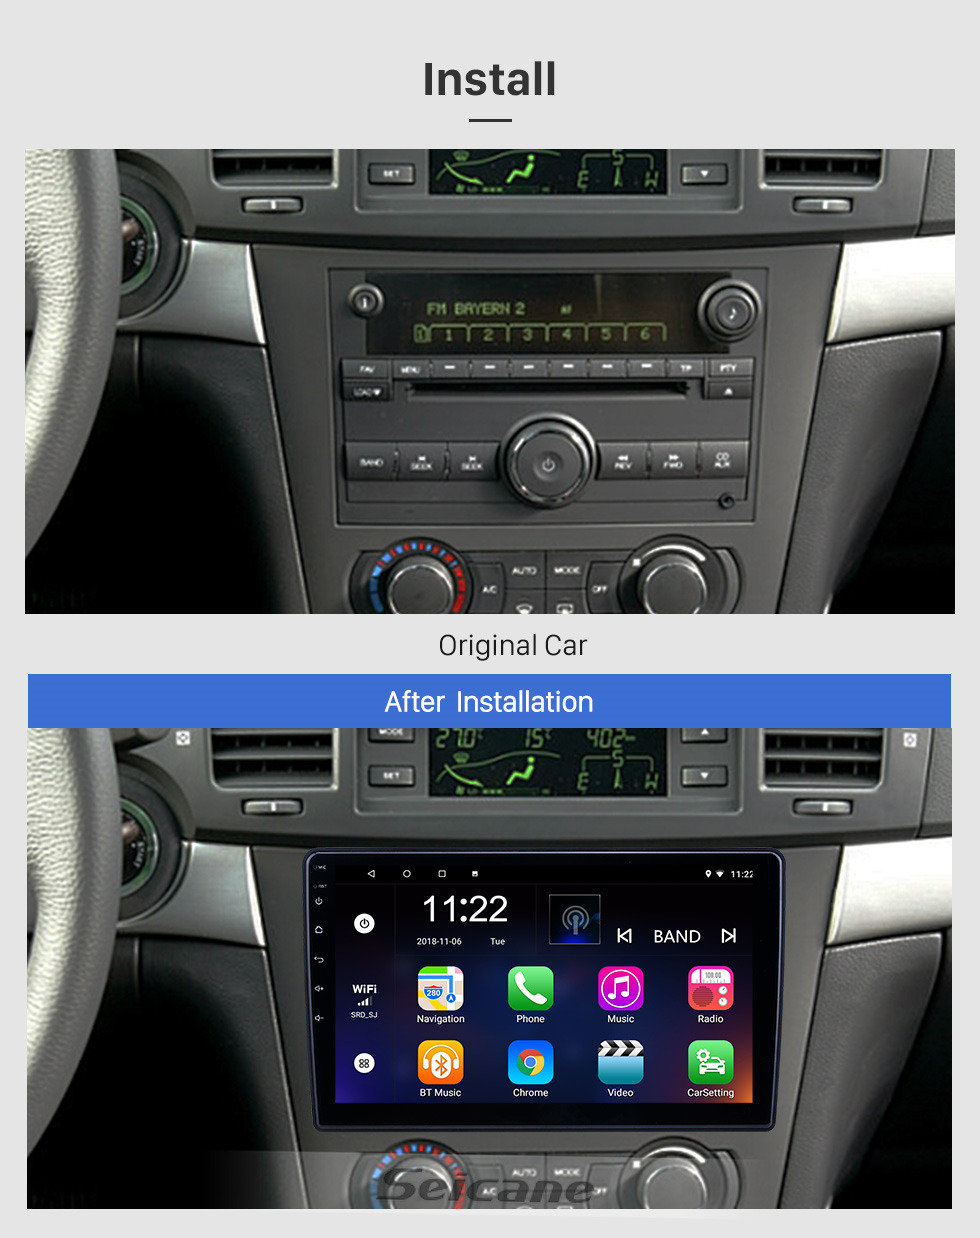 Seicane 10.1 inch Android 10.0 GPS Navigation Radio for 2005-2010 Chevy Chevrolet/Pontiac/Saturn With HD Touchscreen Bluetooth support Carplay